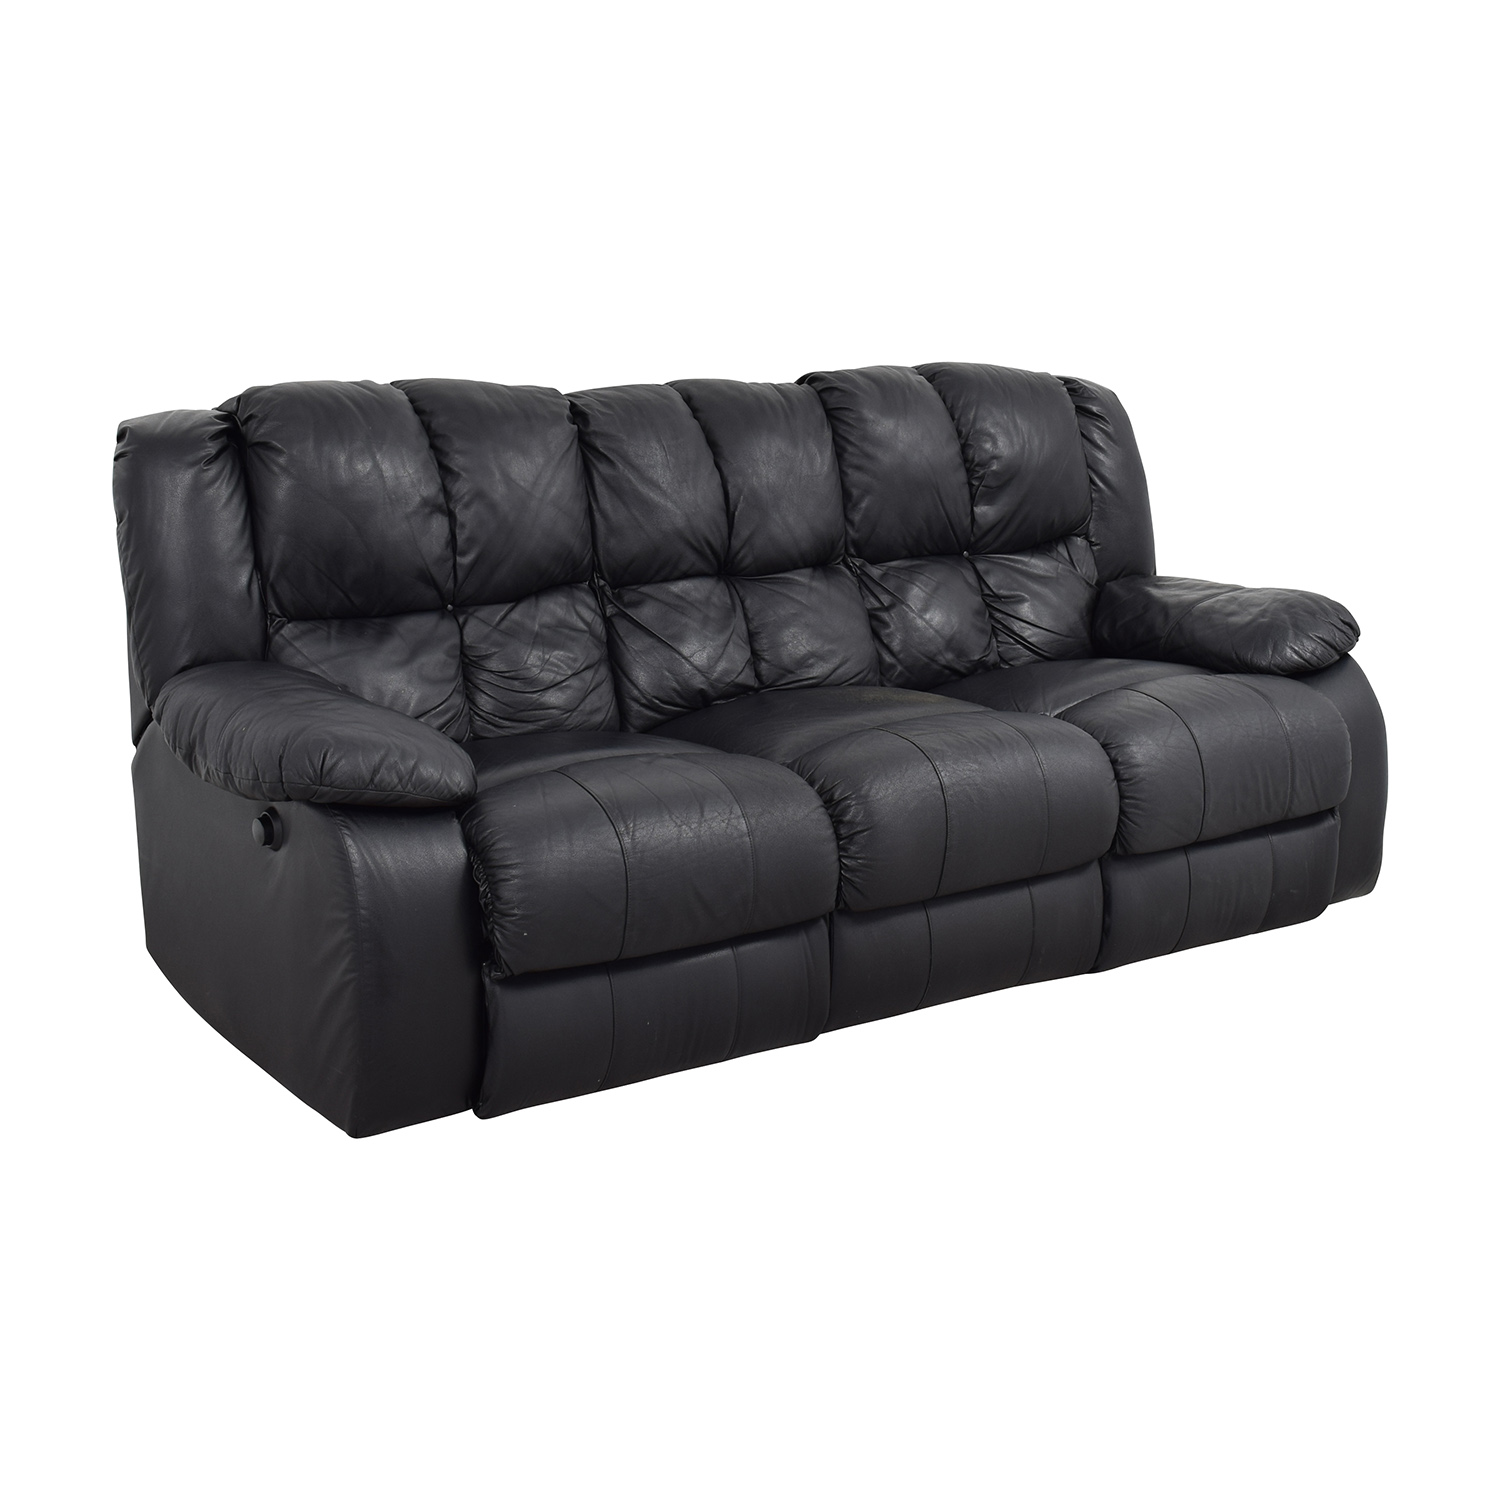 secondhand leather sofas sofa offers sri lanka second hand bed best house interior today